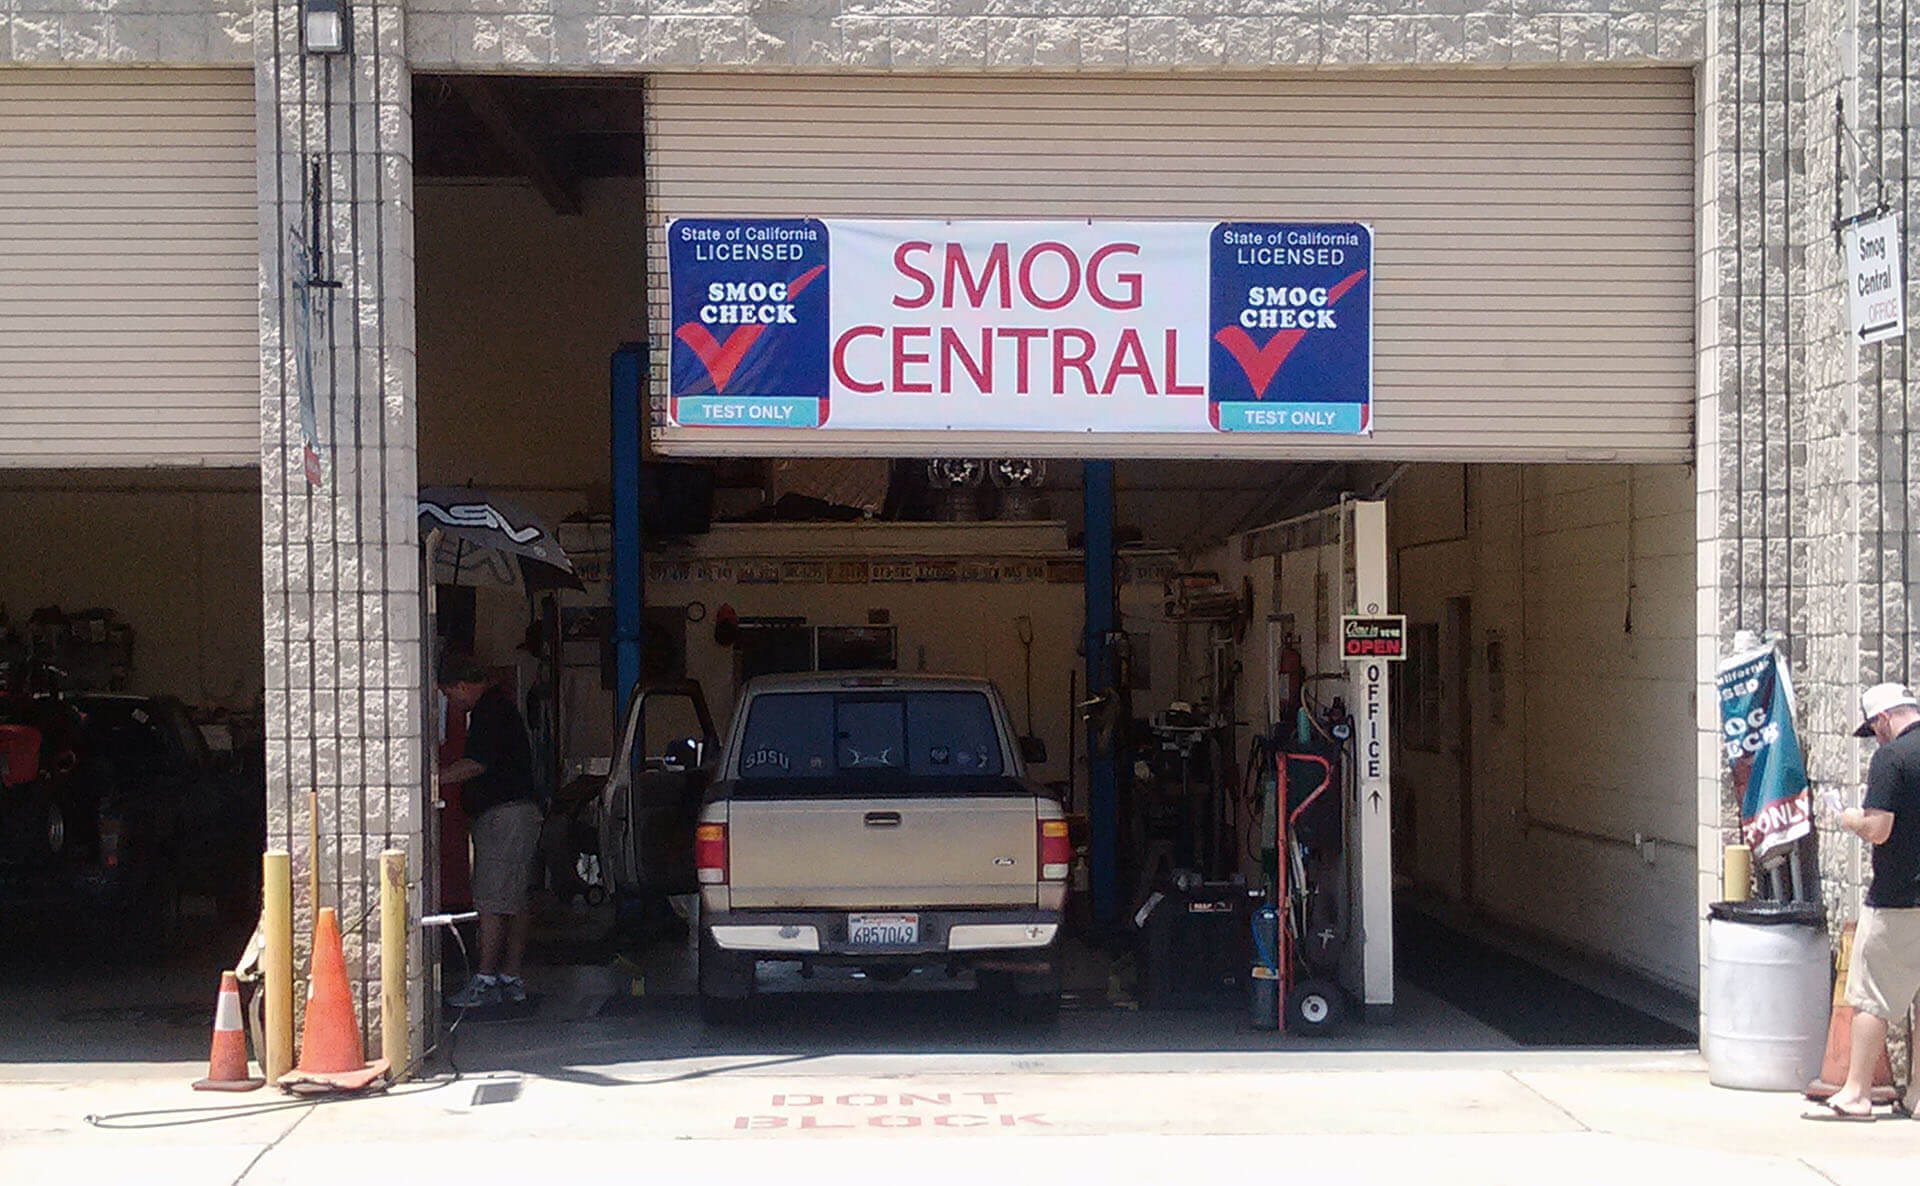 Expert Tune And Smog >> Smog Central Station - Smog Central Station